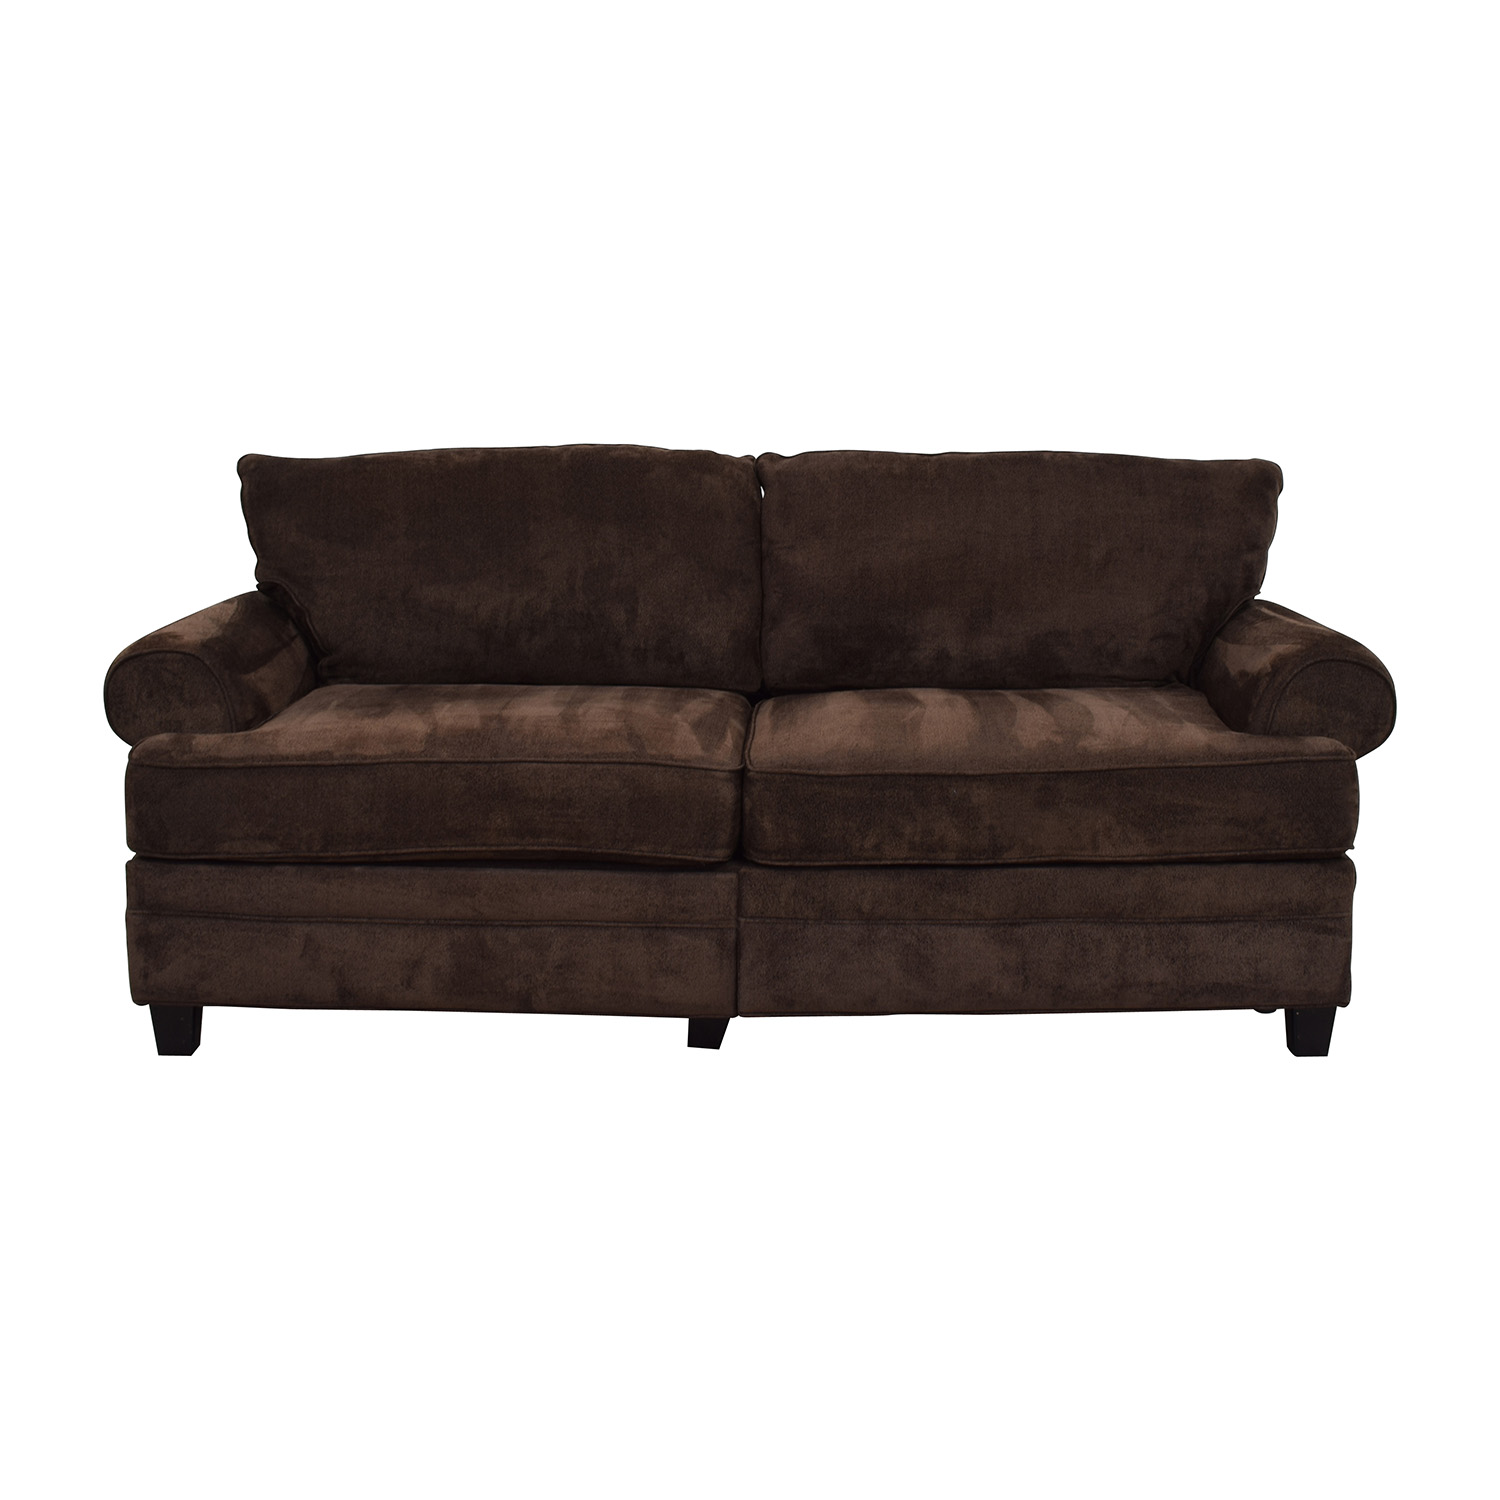 Pleasant 68 Off Bobs Discount Furniture Bob Furniture Kendall Ii Brown Sofa With Storage Sofas Home Remodeling Inspirations Gresiscottssportslandcom